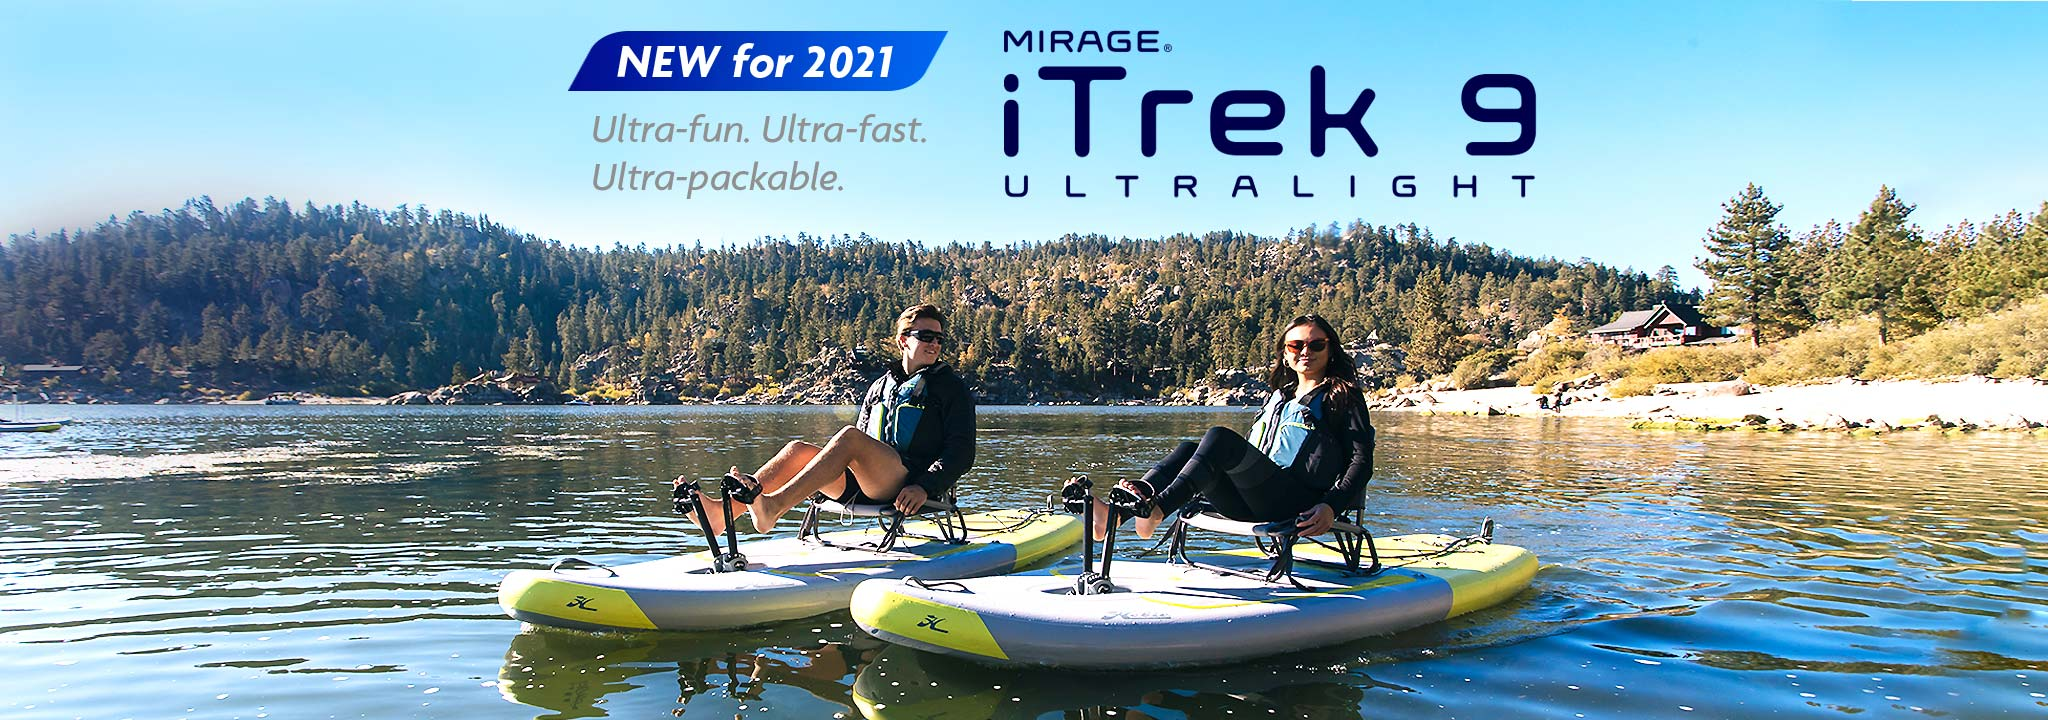 Mirage iTrek 9 Ultralight